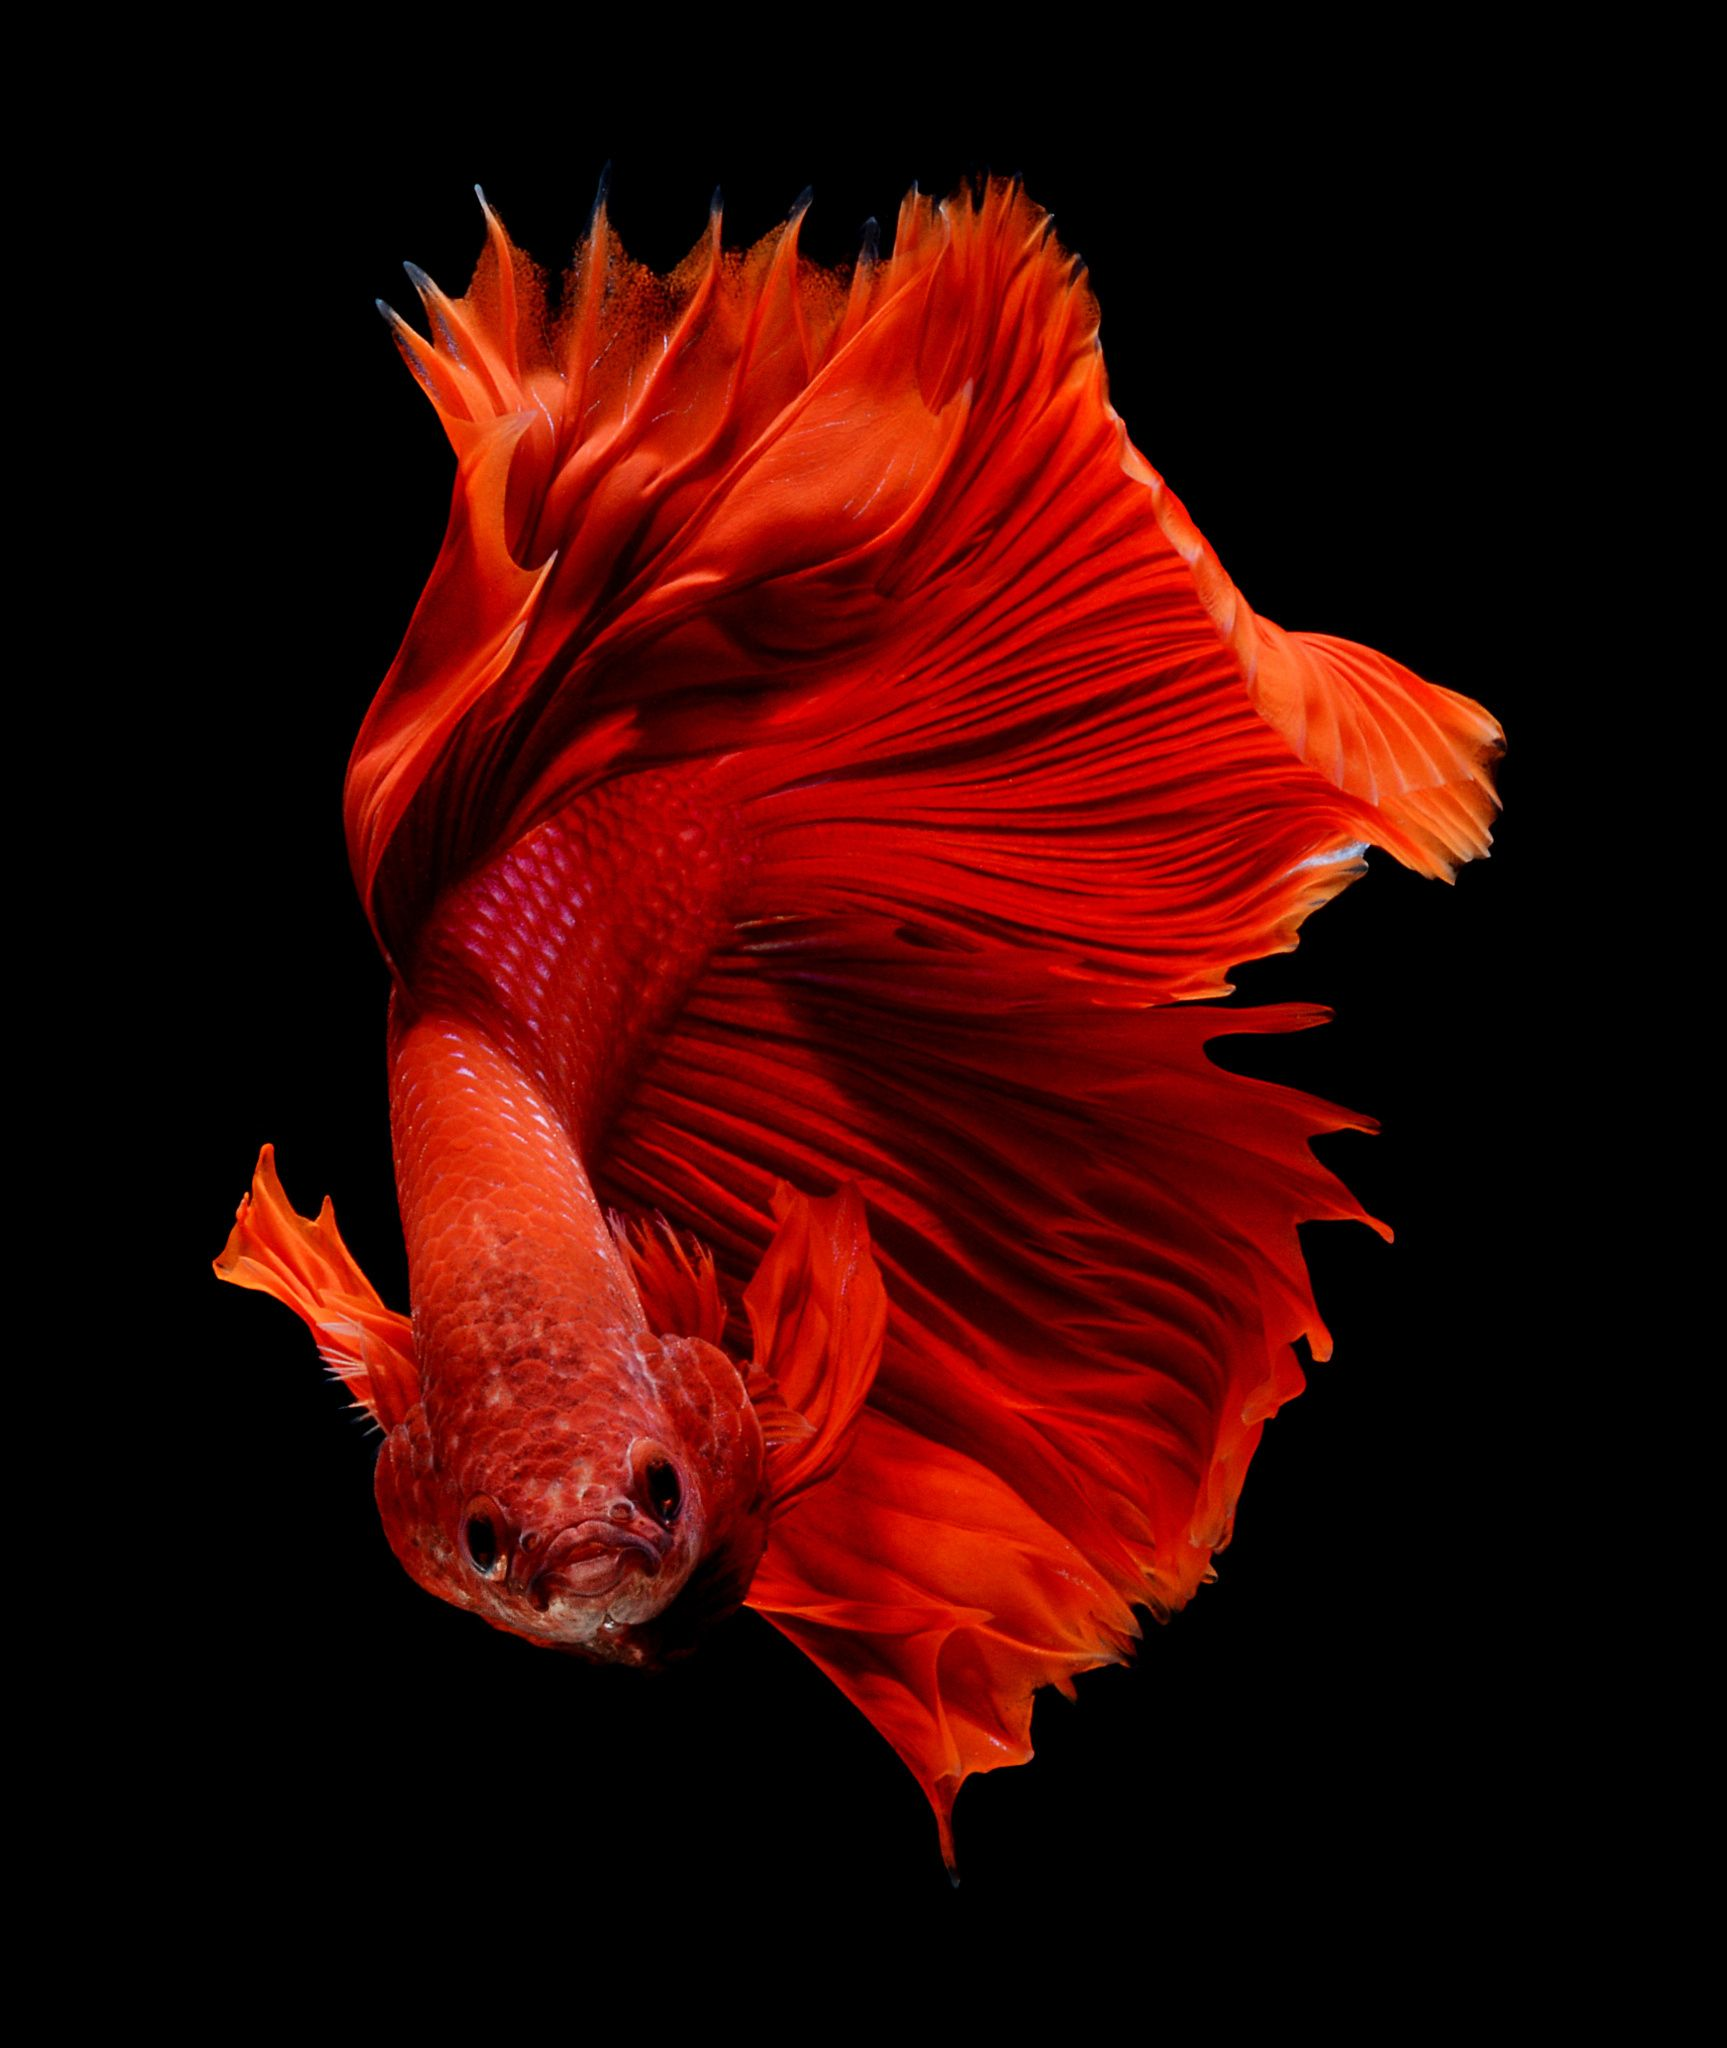 Red by visarute angkatavanich on 500px beta fish for Red betta fish